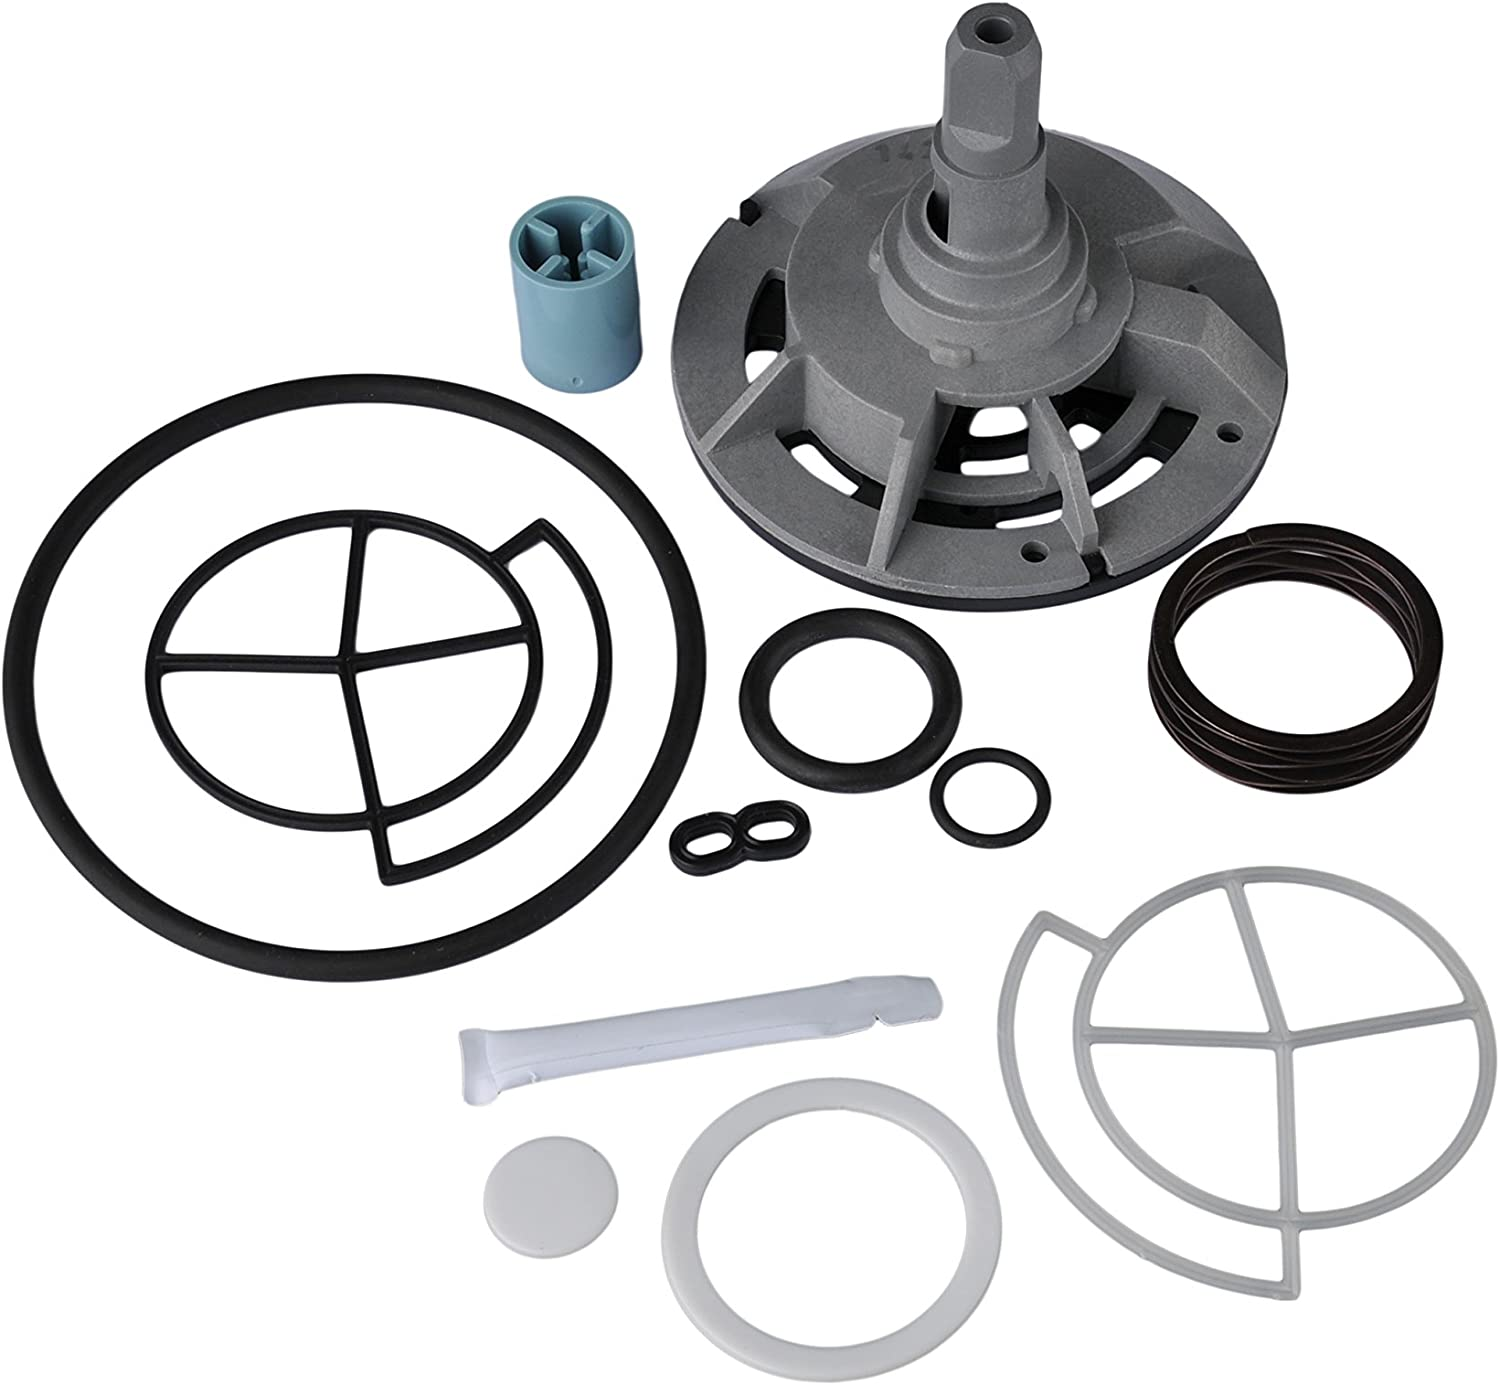 "Water Softener 1"" Rotor & Seal Kit - Part # 7257535"